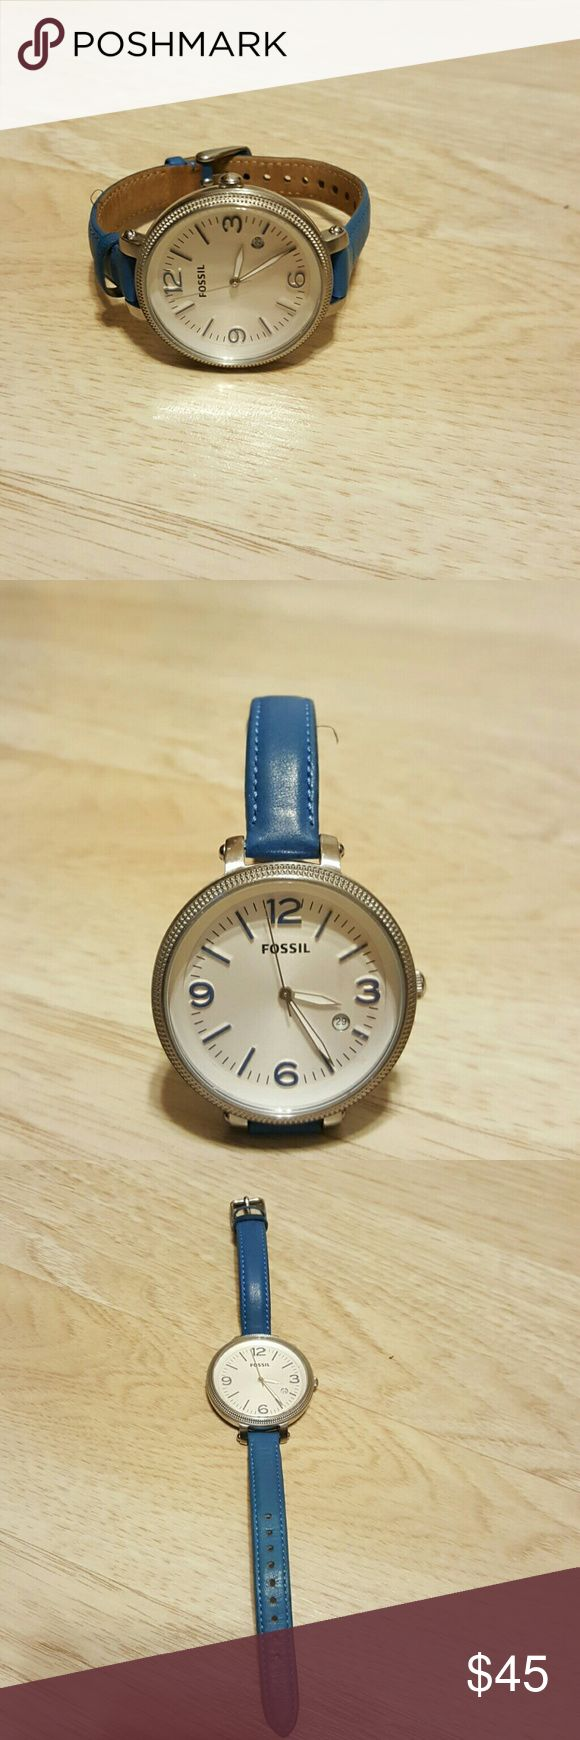 Fossil  Boyfriend Watch Boyfriend Watch has a large face. Blue leather band. White face with blue numbers outlined in silver.  Wore a few times. The face has minimal scuff marks. Needs batteries. Fossil Accessories Watches